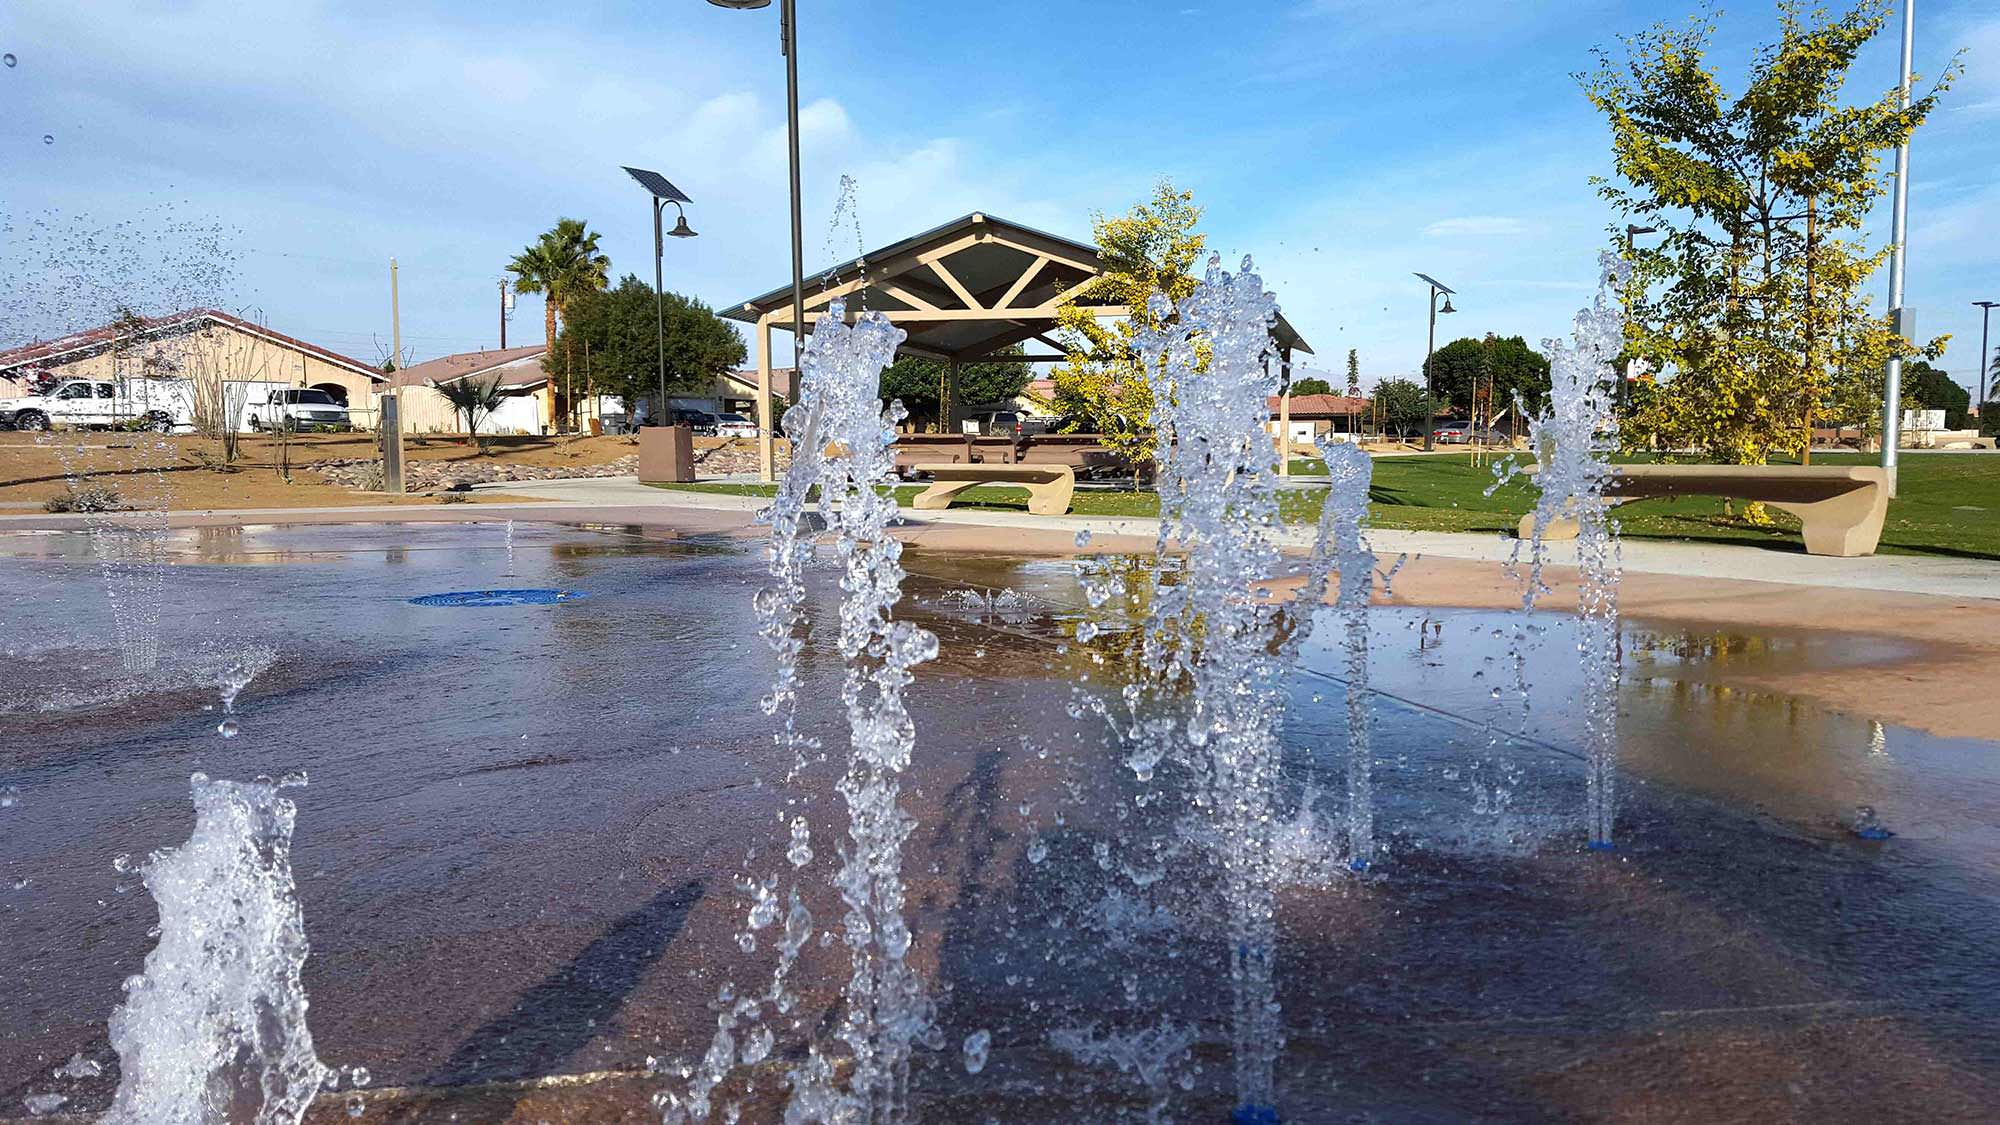 ocotillo-park-splash-pad